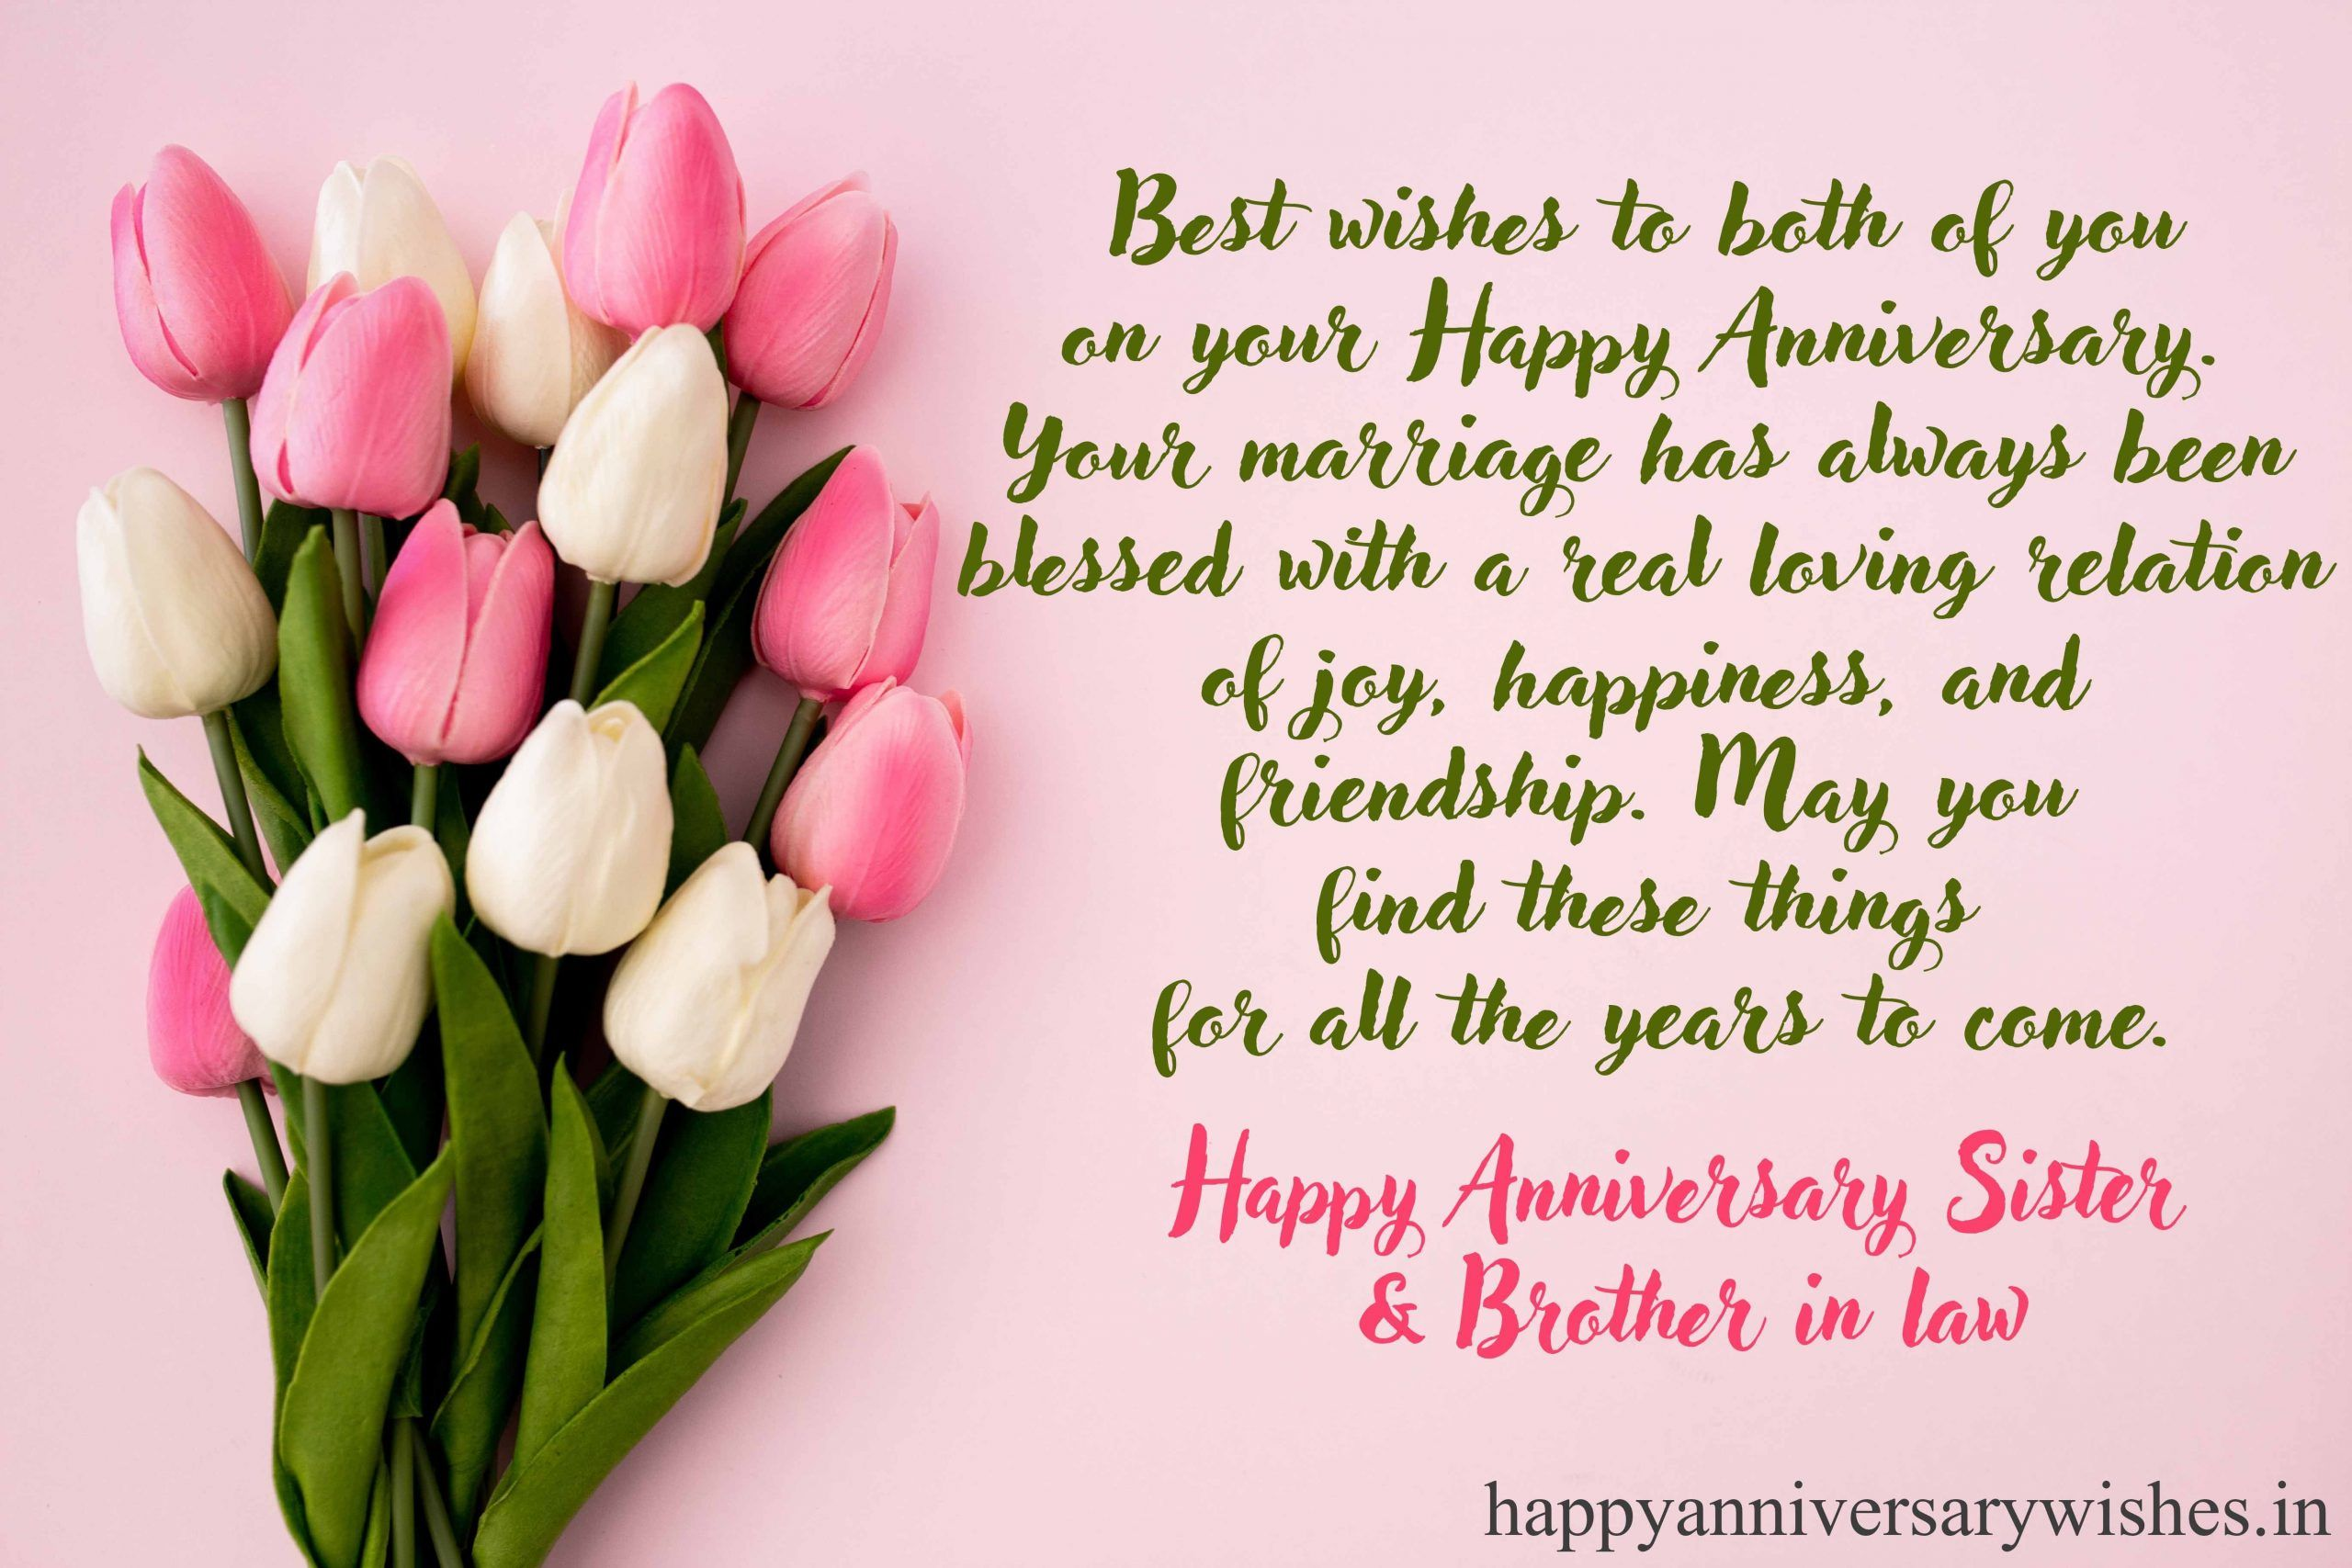 Wedding Anniversary Wishes For Sister Wedding Anniversary Wishes Anniversary Wedding Anniversary Wishes Anniversary Wishes For Sister Best Anniversary Wishes